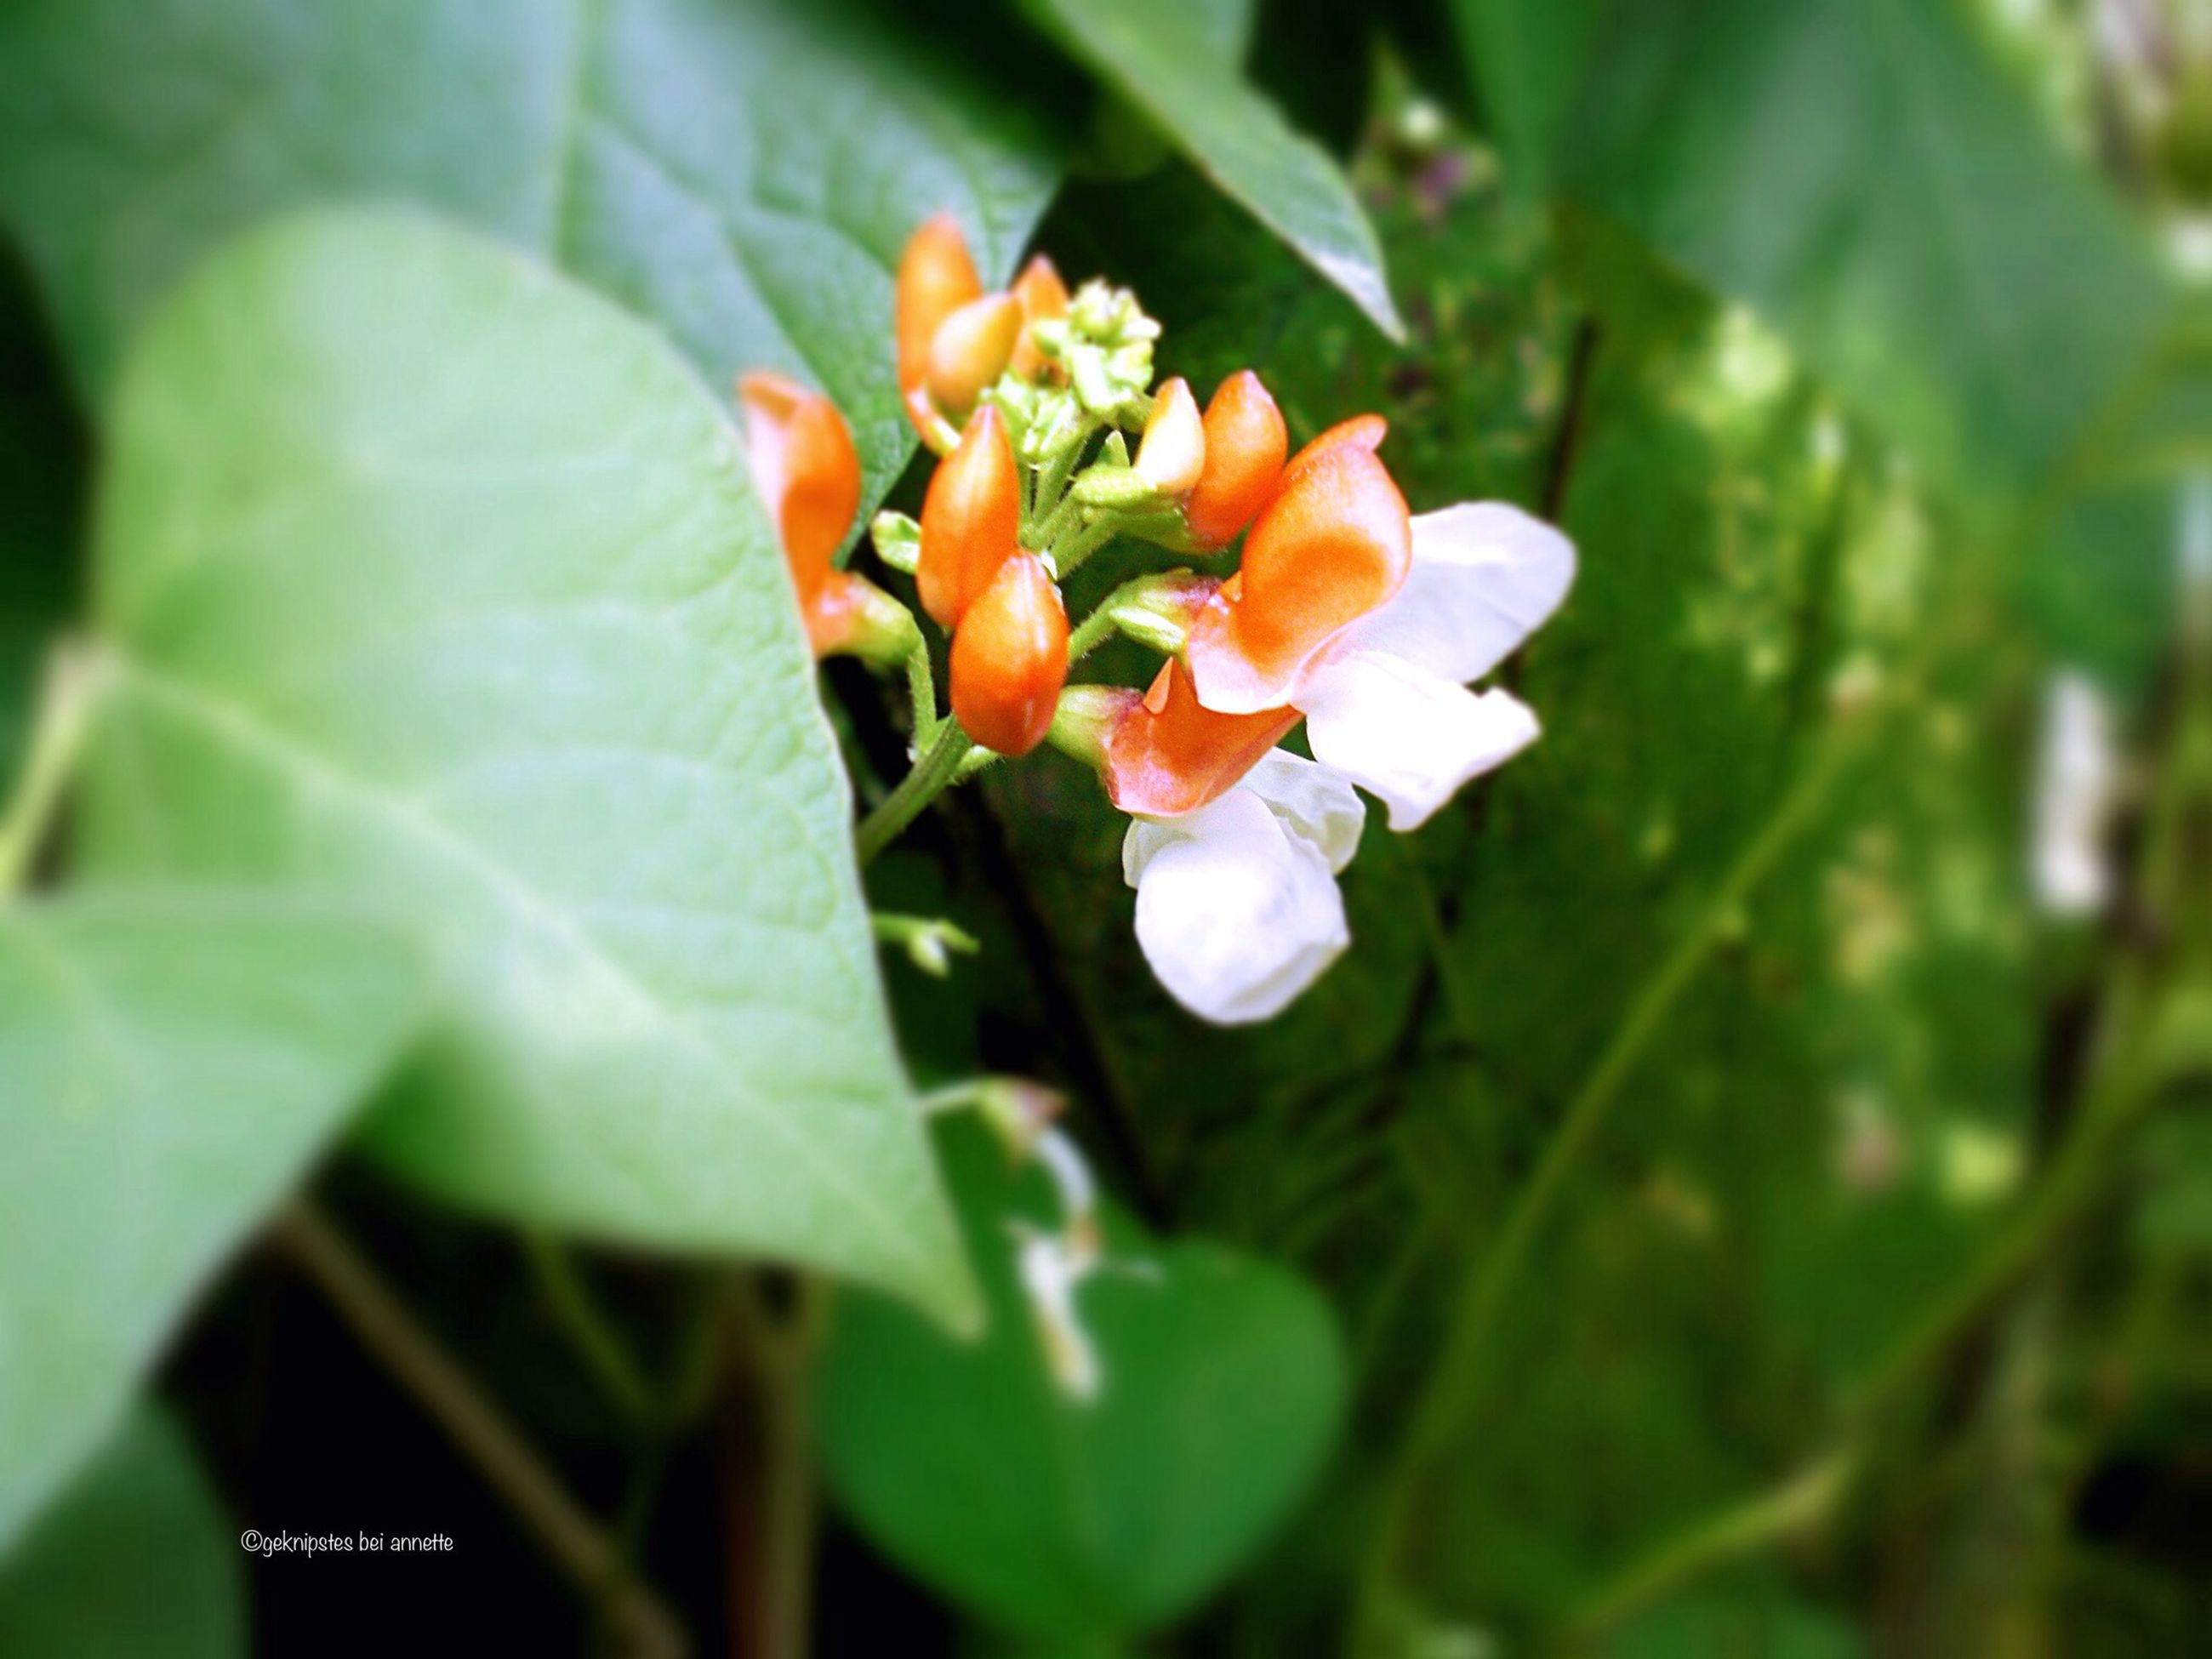 flower, freshness, growth, fragility, petal, leaf, beauty in nature, plant, flower head, close-up, nature, blooming, focus on foreground, green color, bud, stem, in bloom, selective focus, outdoors, blossom